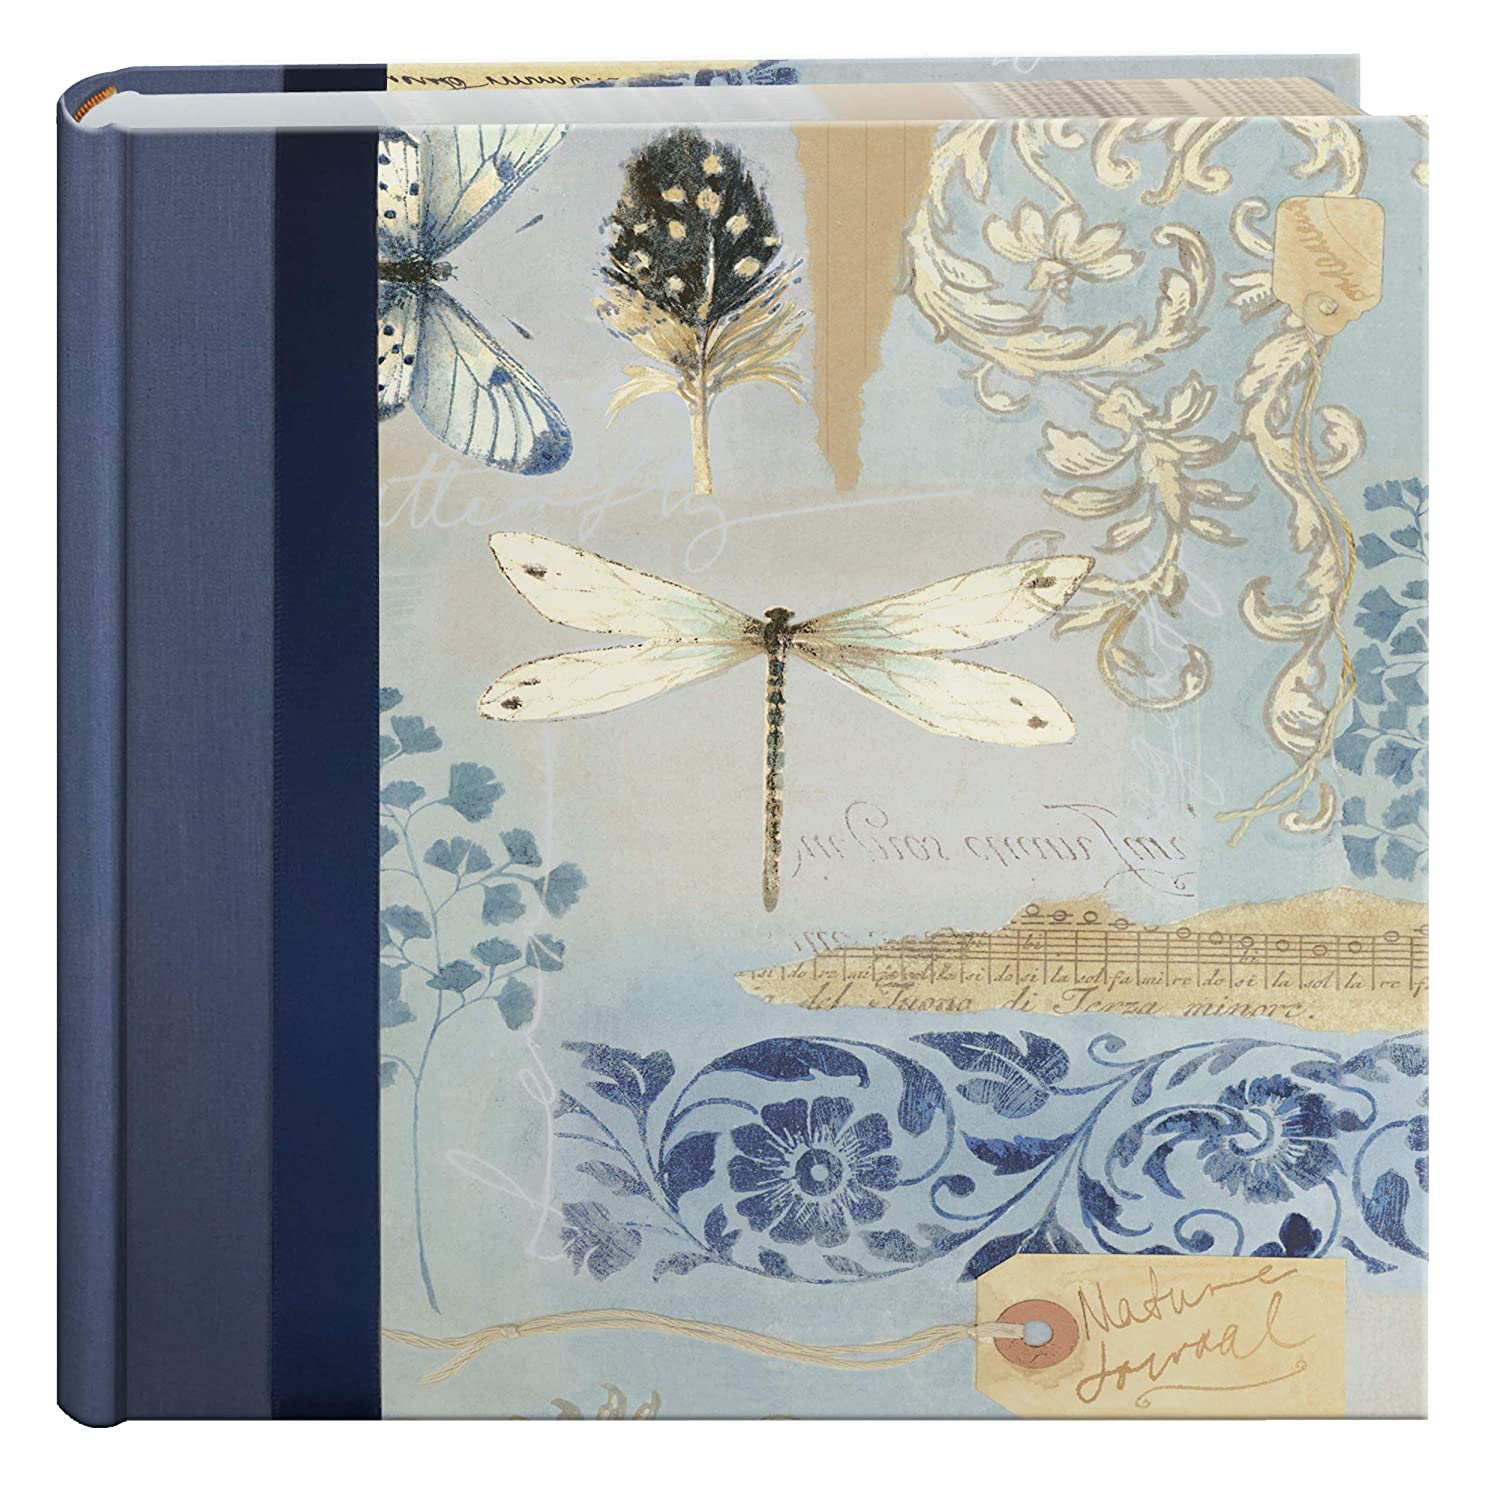 Pioneer Bella Fabric Ribbon Frame Bi-Directional Memo Frame Photo Album, Bella Fabric Covers, Holds 200 4x6' Photos, 2 Per Page Color: Sky. Holds 200 4x6 Photos DA-200D/SKY